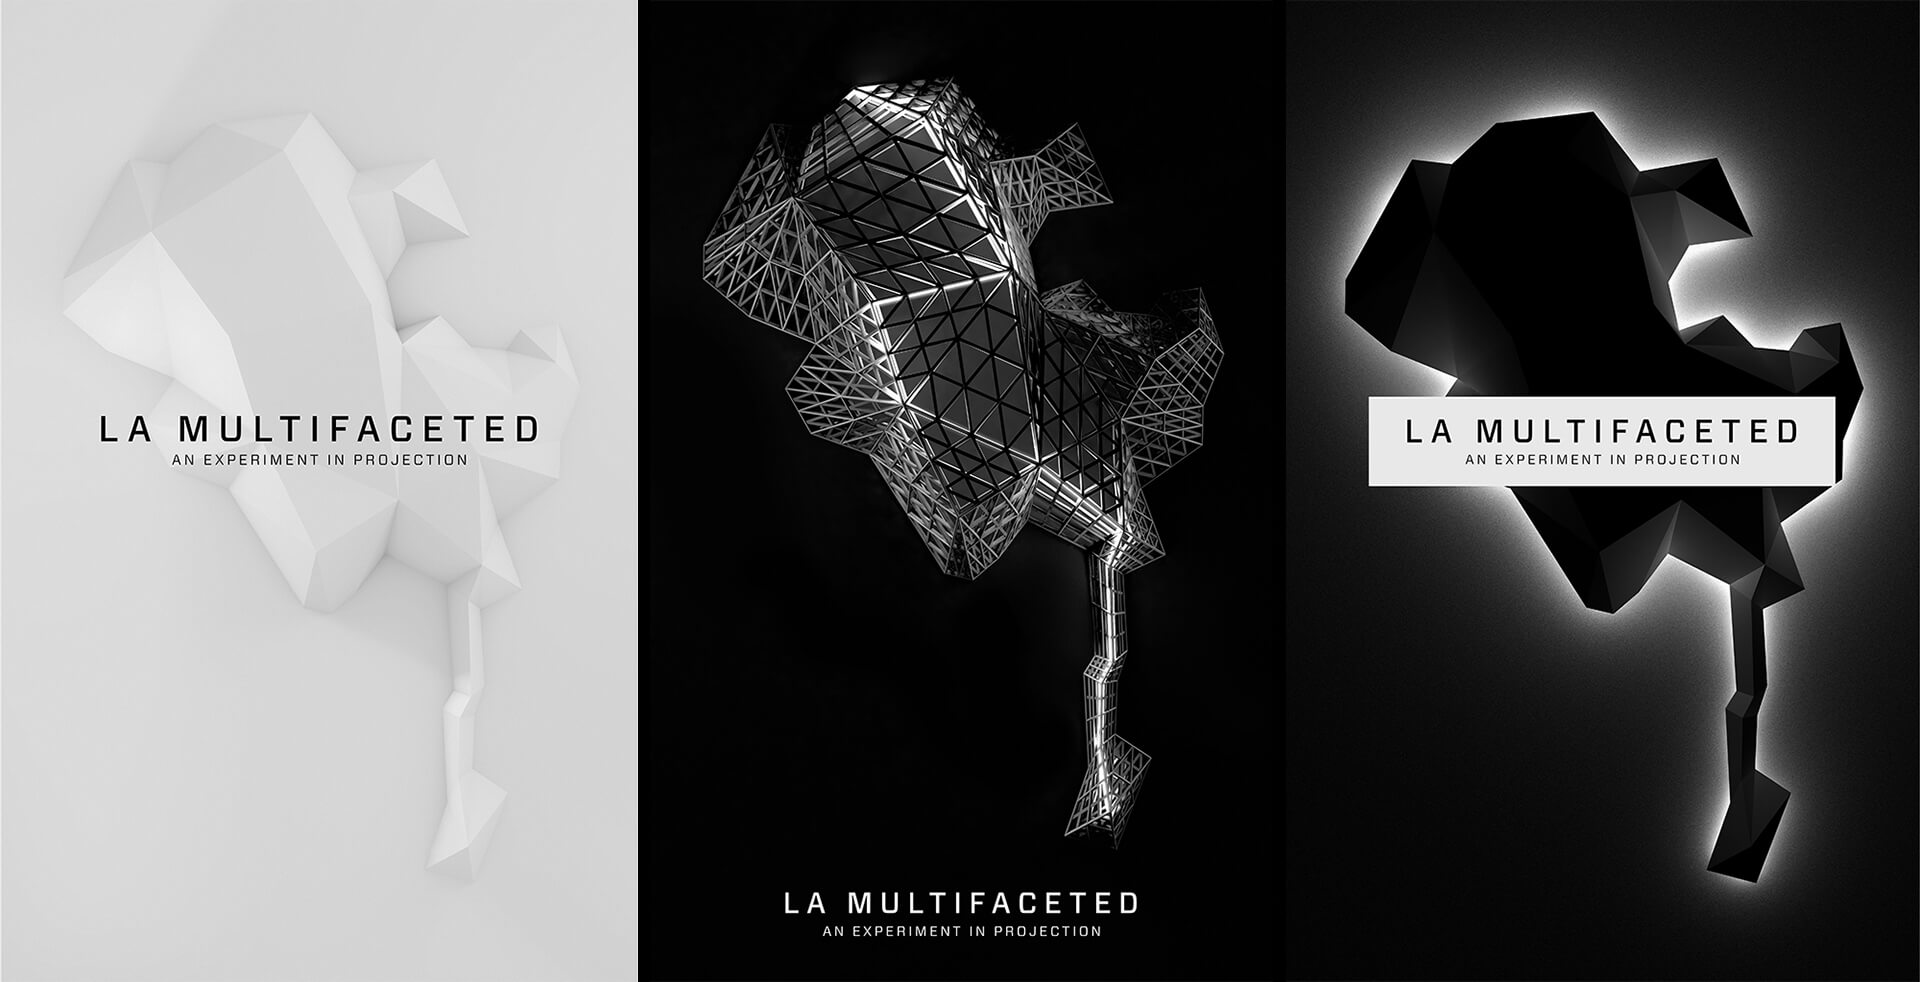 lamultifaceted_01